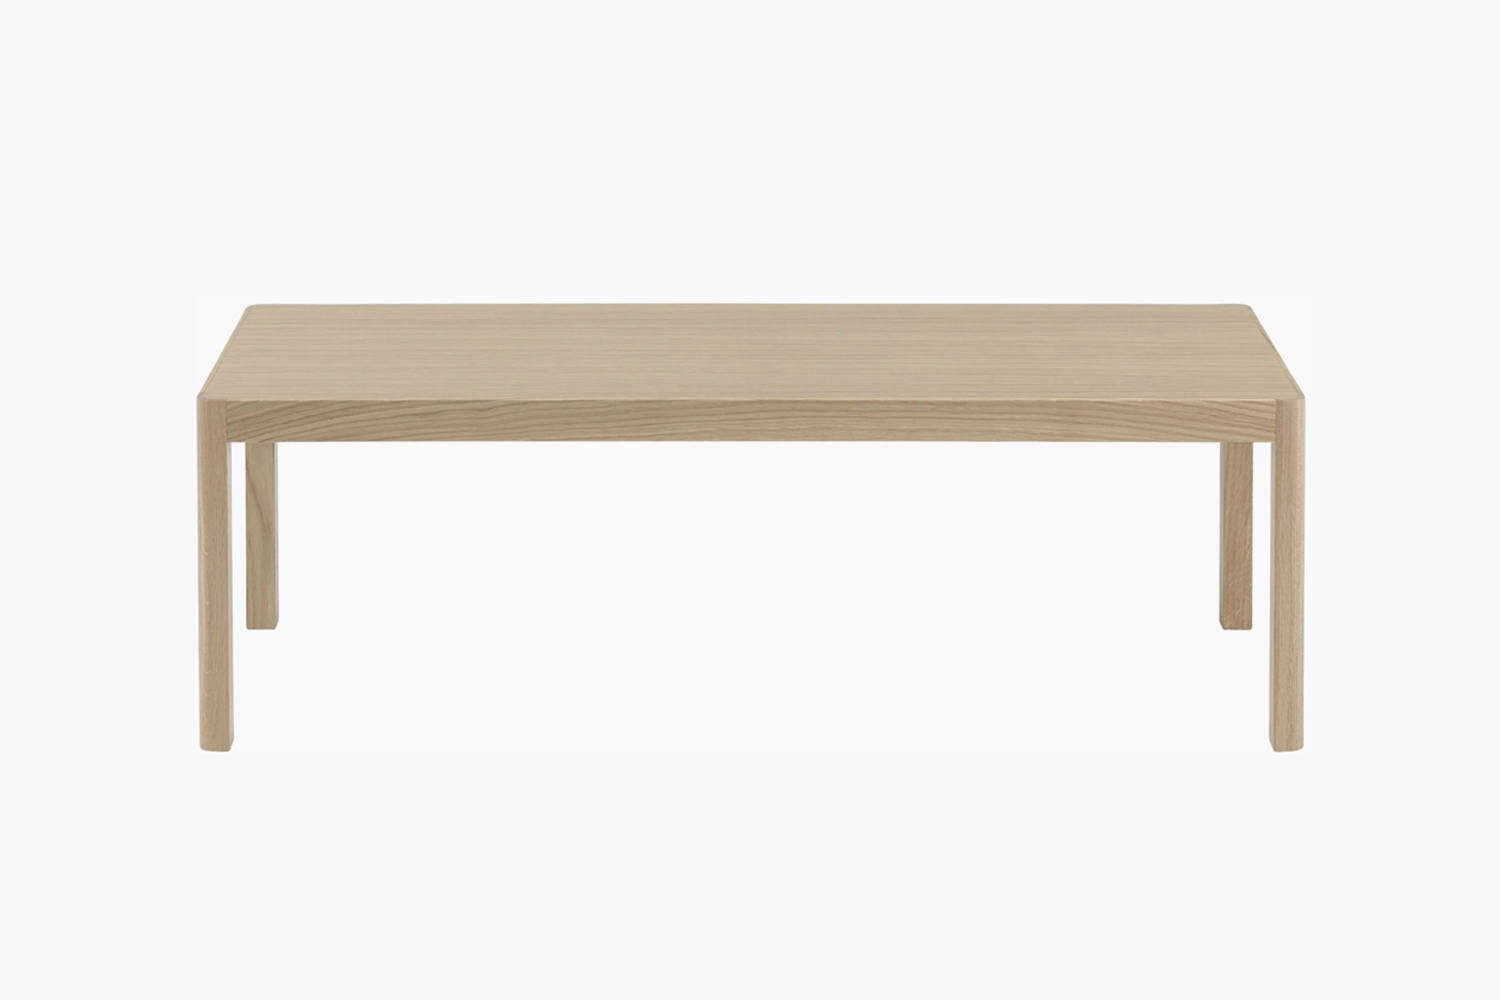 The Workshop Coffee Table from Muuto is made of lacquered oak for $685 at Design Within Reach.